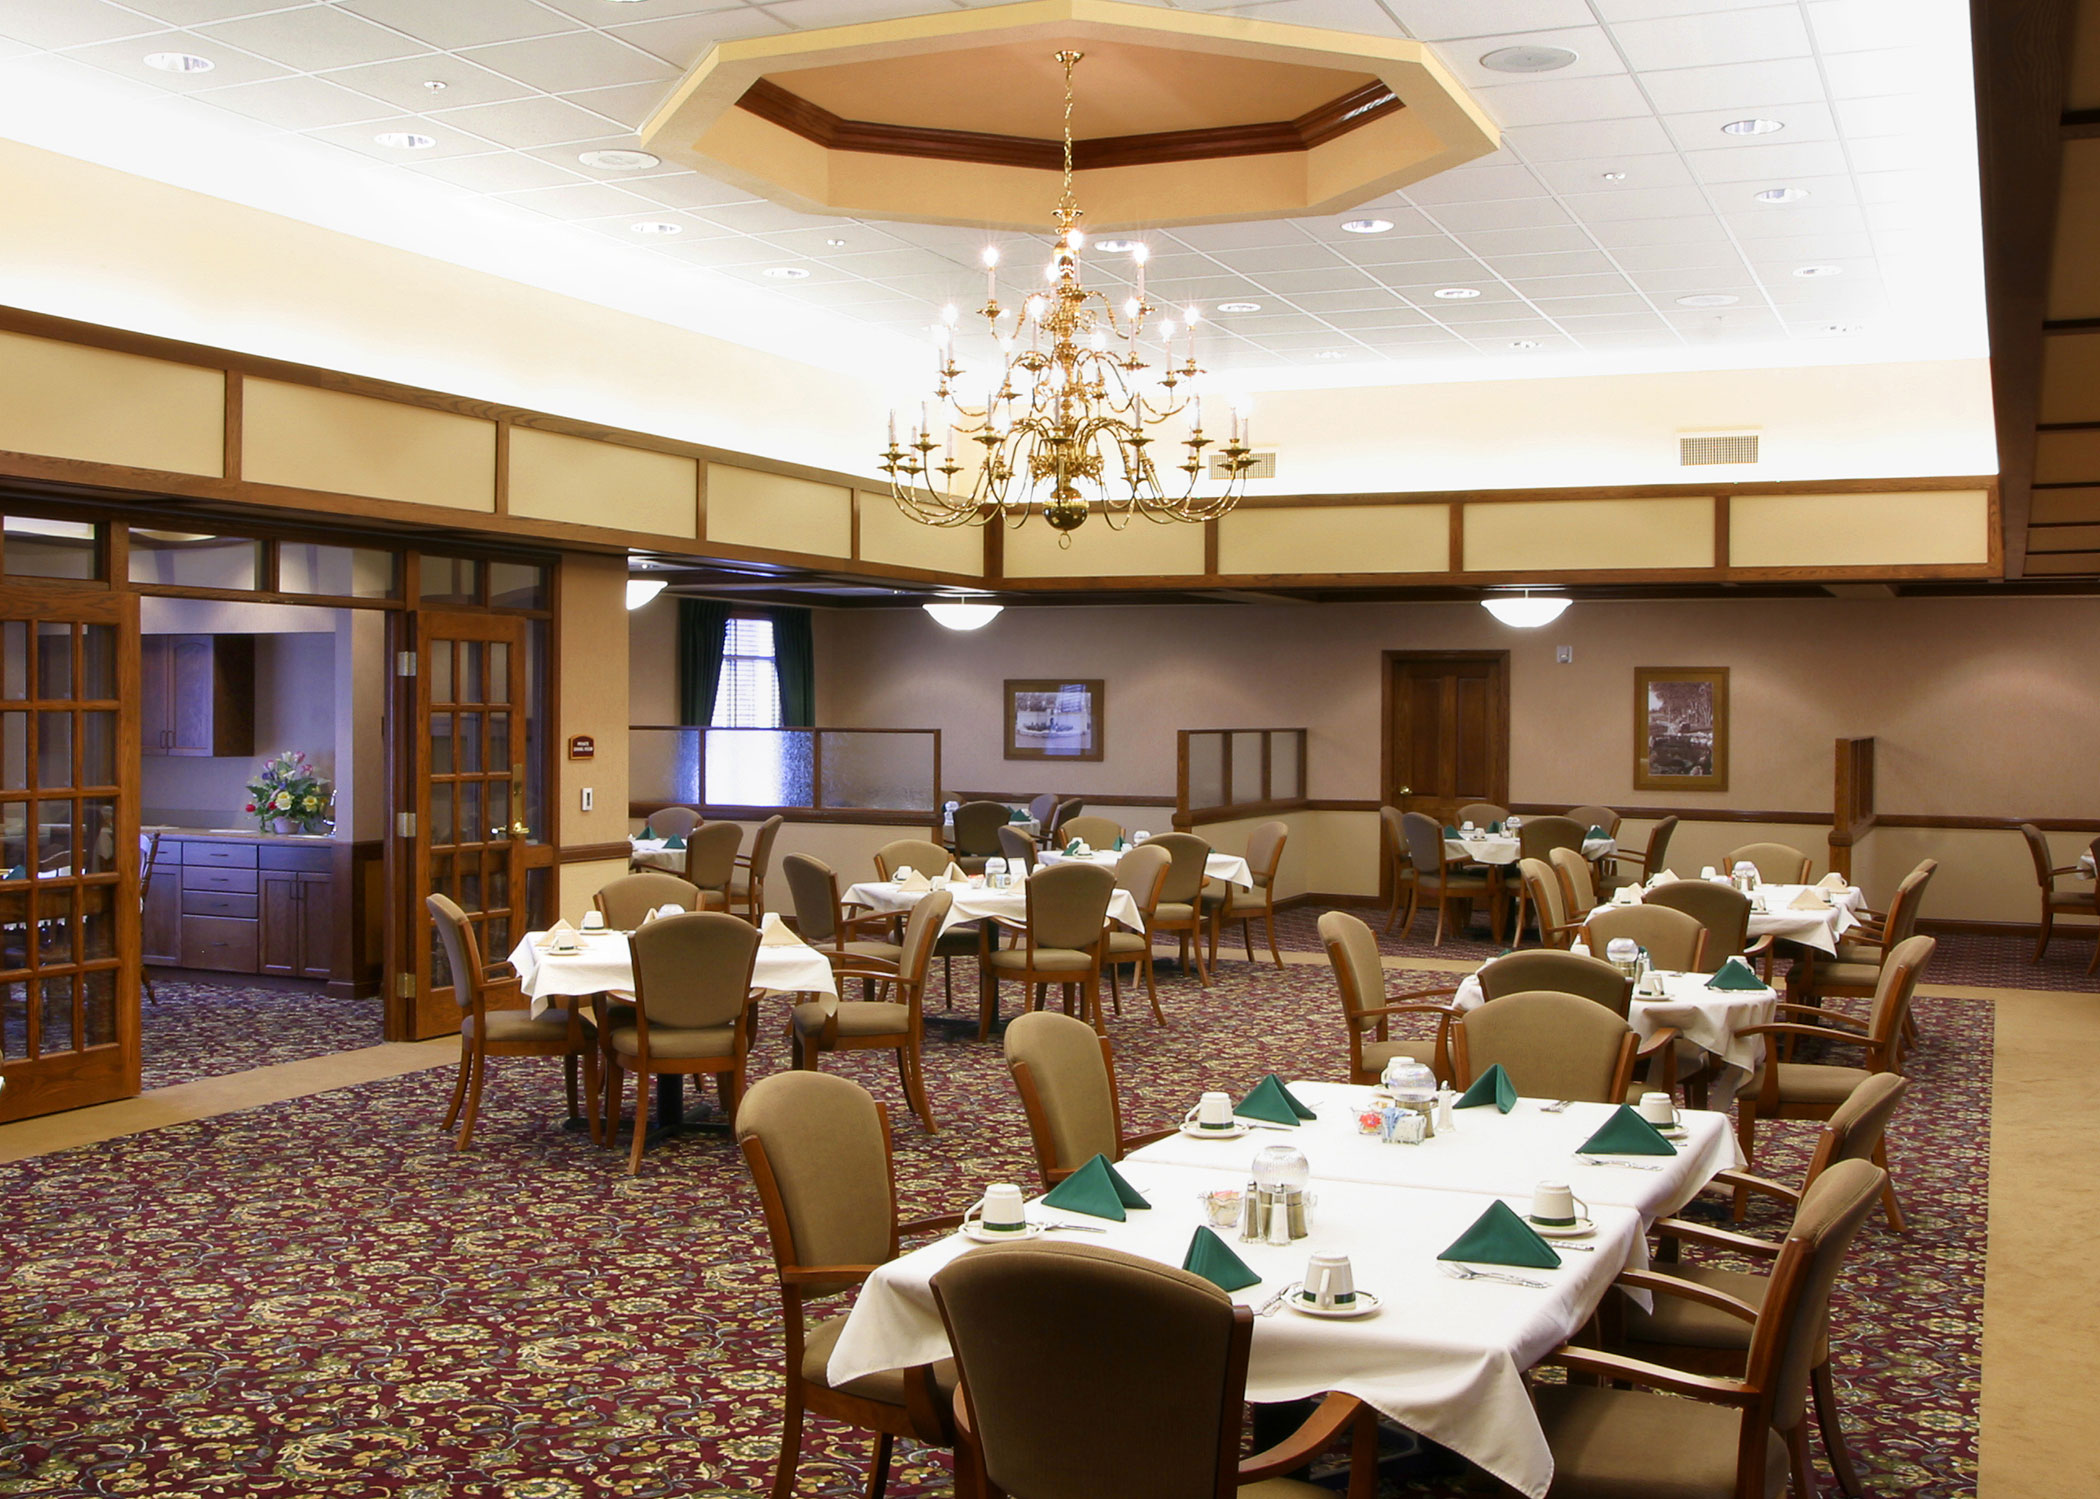 Interior of Covell's Restaurant with a large gold chandelier and set tables with white table cloths, green cloth napkins and coffee cups